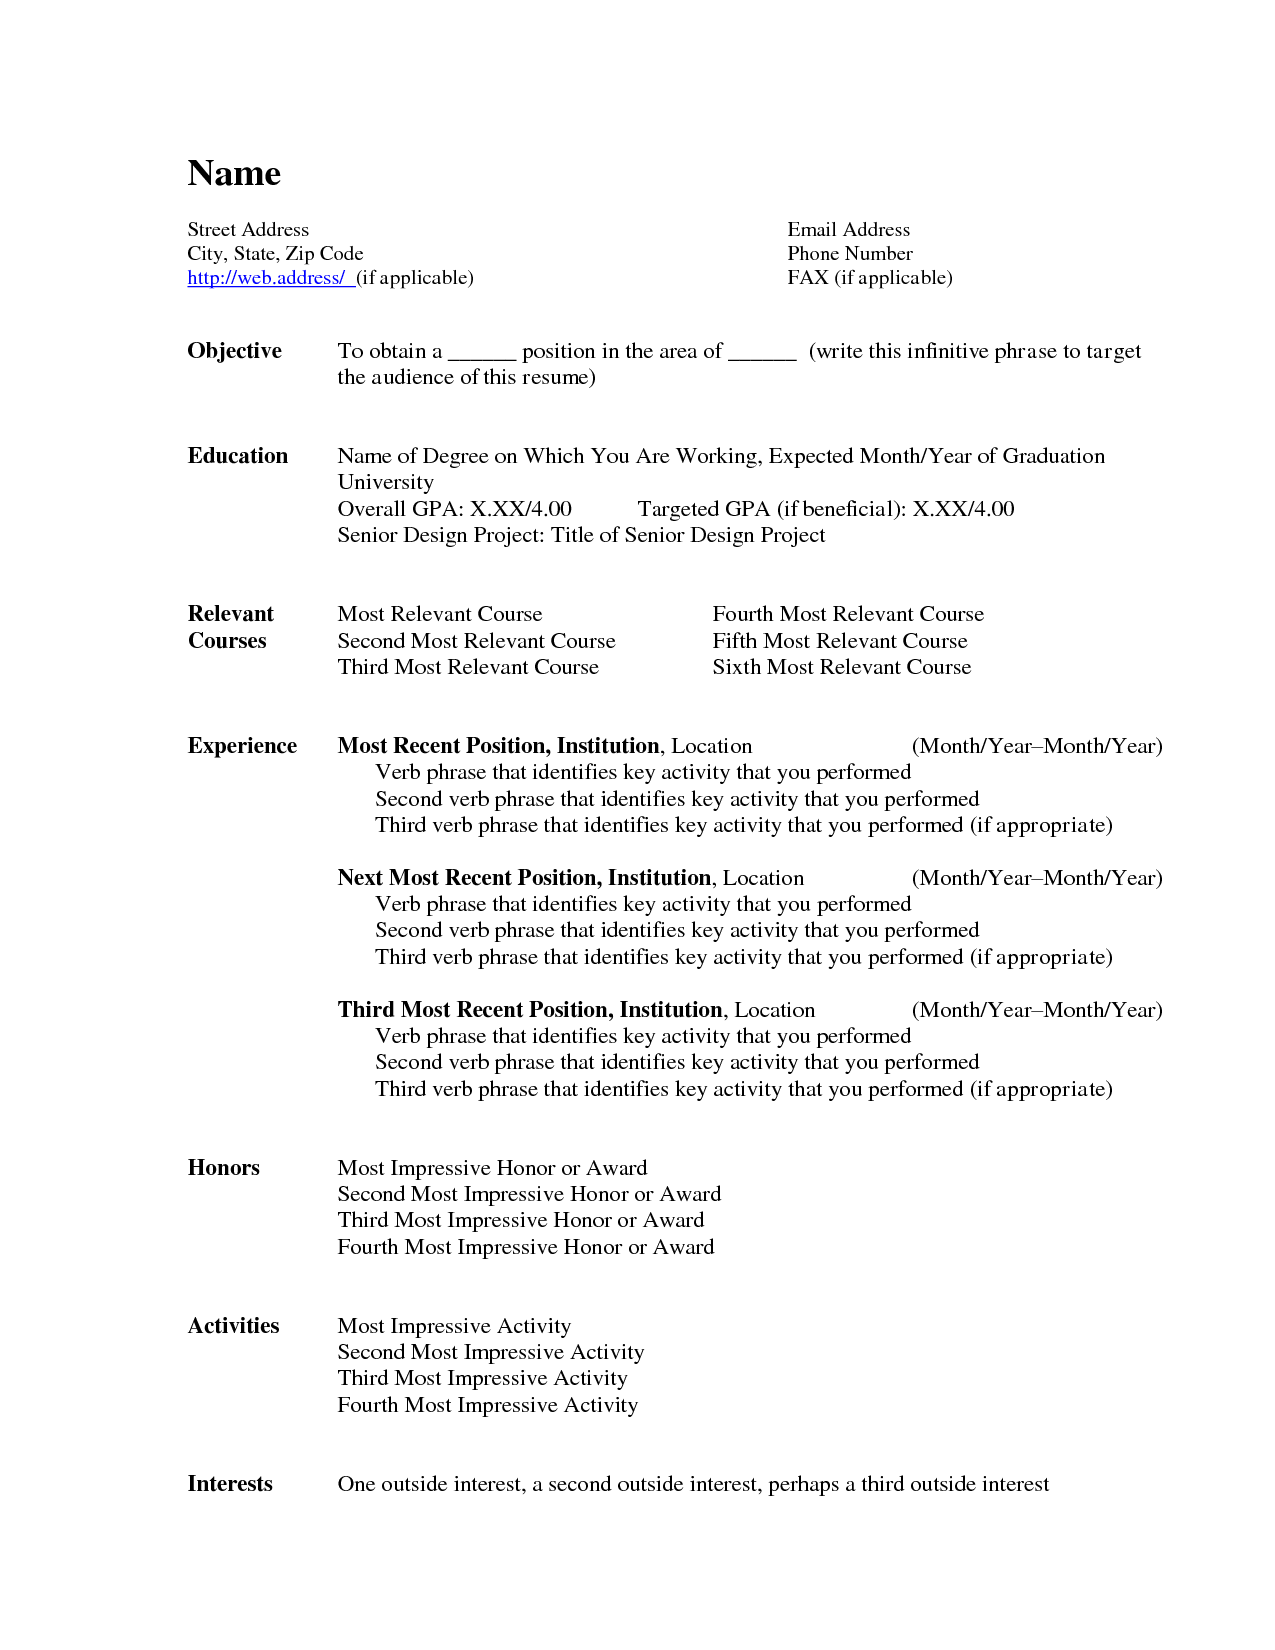 resumes microsoft word - Free Resume Templates Microsoft Word 2007